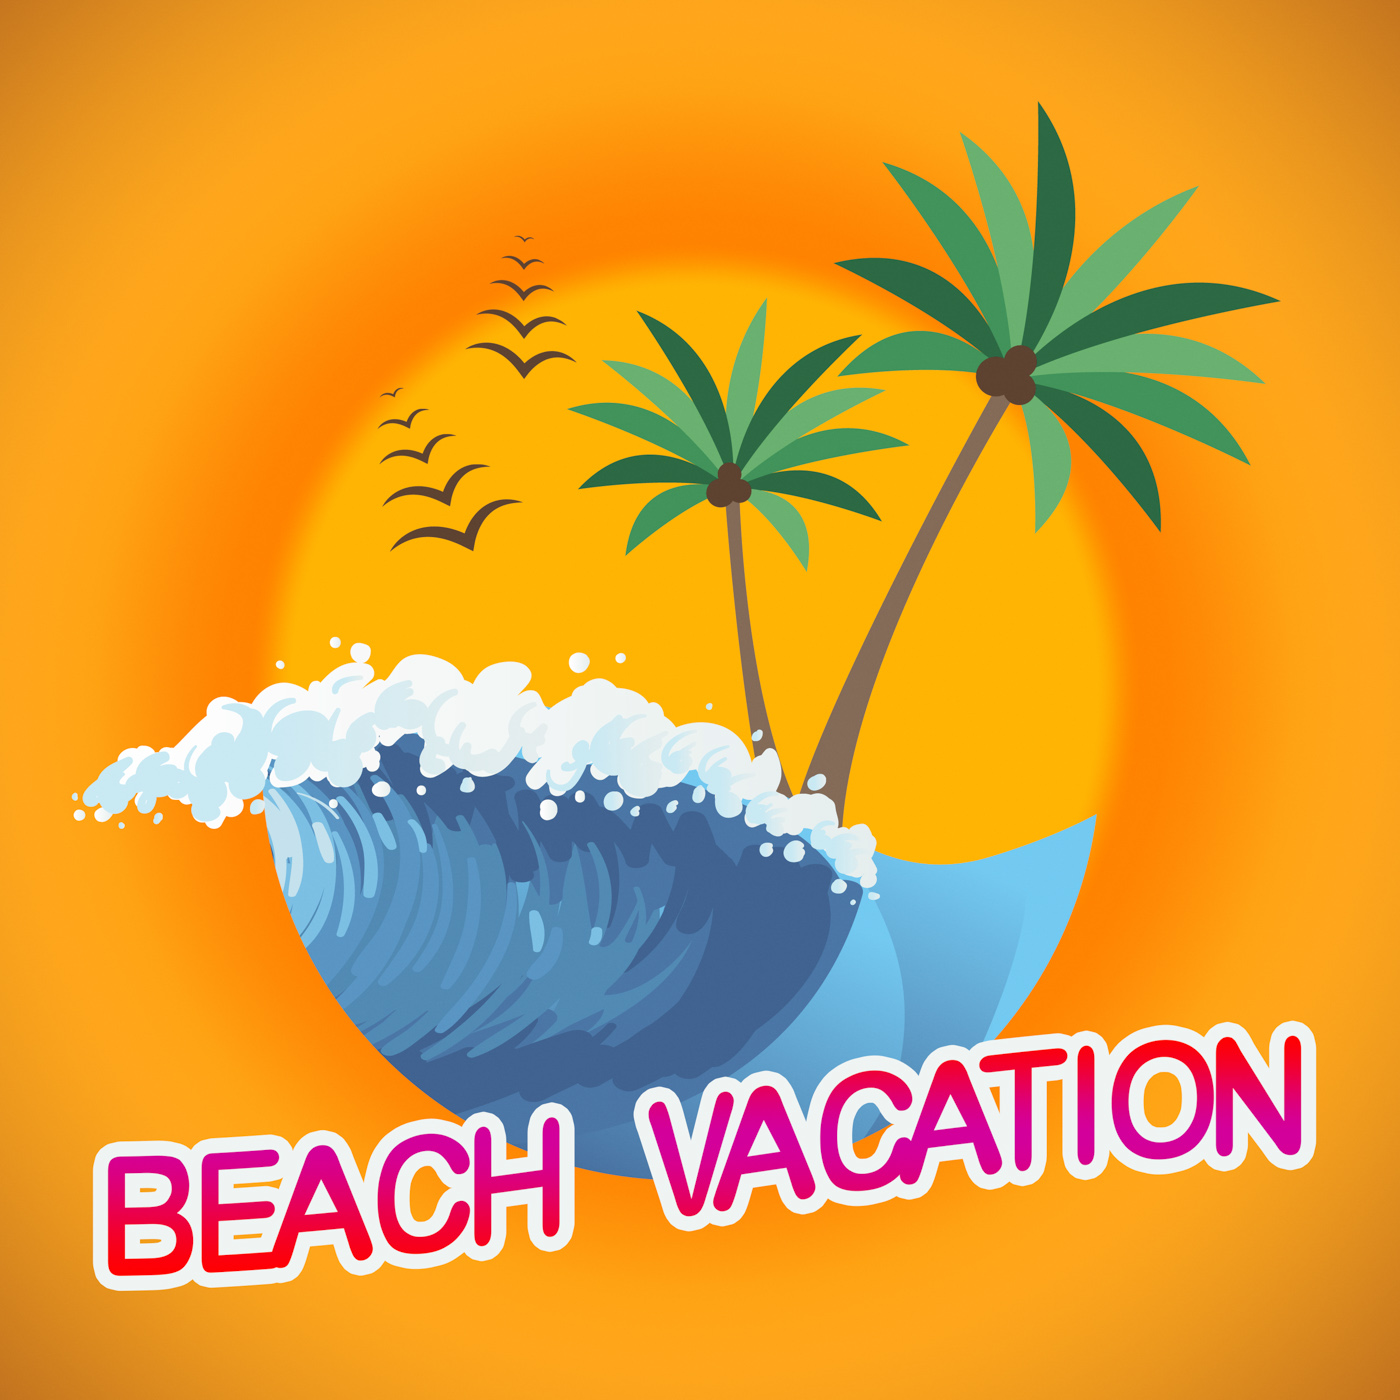 Beach Vacation Represents Beaches Warmth And Seaside, Beach, Beaches, Break, Getaway, HQ Photo